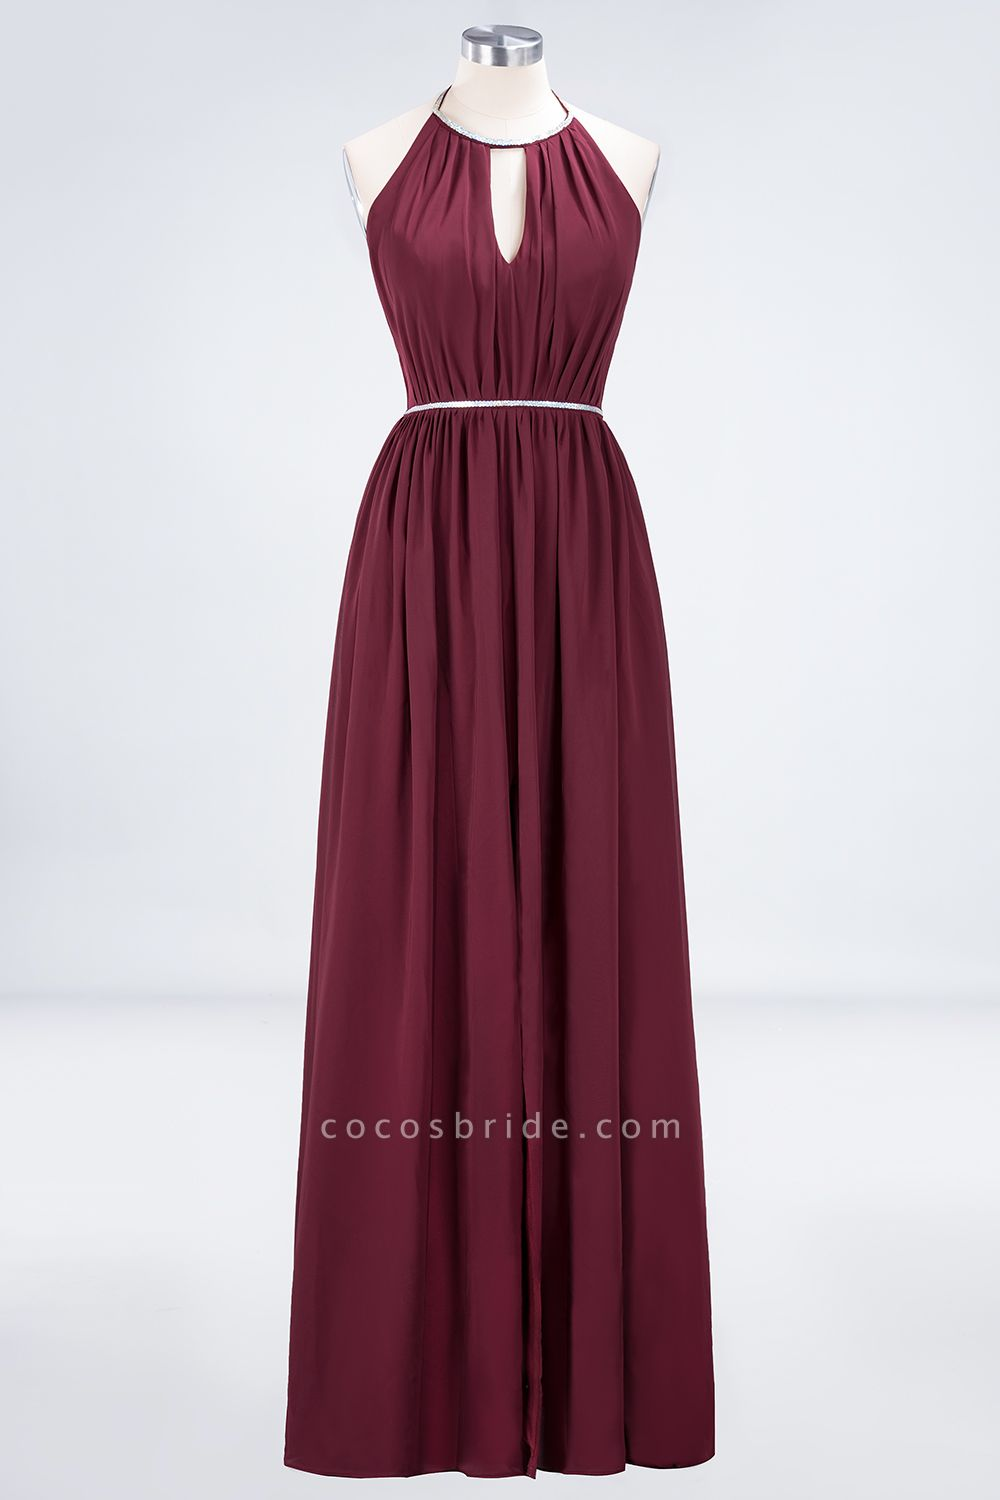 A-line Chiffon Halter Sleeveless Floor-Length Bridesmaid Dress with Beading Sash